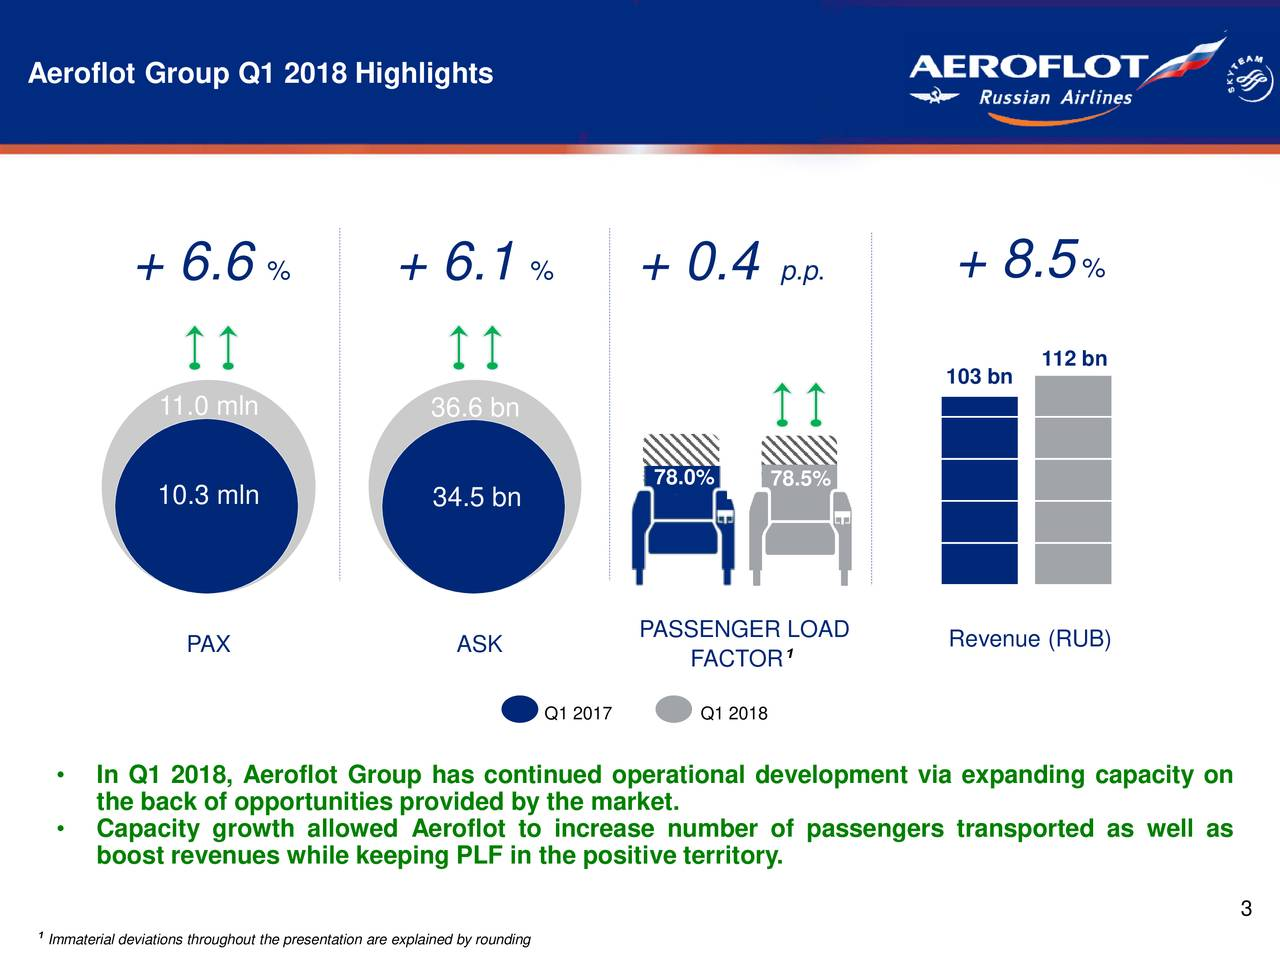 + 6.6 % + 6.1 % + 0.4 p.p. + 8.5 % 103 bn 112 bn 11.0 mln 36.6 bn 78.0% 78.5% 10.3 mln 34.5 bn PAX ASK PASSENGER LOAD Revenue (RUB) FACTOR ¹ Q1 2017 Q1 2018 • In Q1 2018, Aeroflot Group has continued operational development via expanding capacity on the back of opportunities provided by the market. • Capacity growth allowed Aeroflot to increase number of passengers transported as well as boost revenues while keeping PLF in the positive territory. 3 Immaterial deviations throughout the presentation are explained by rounding